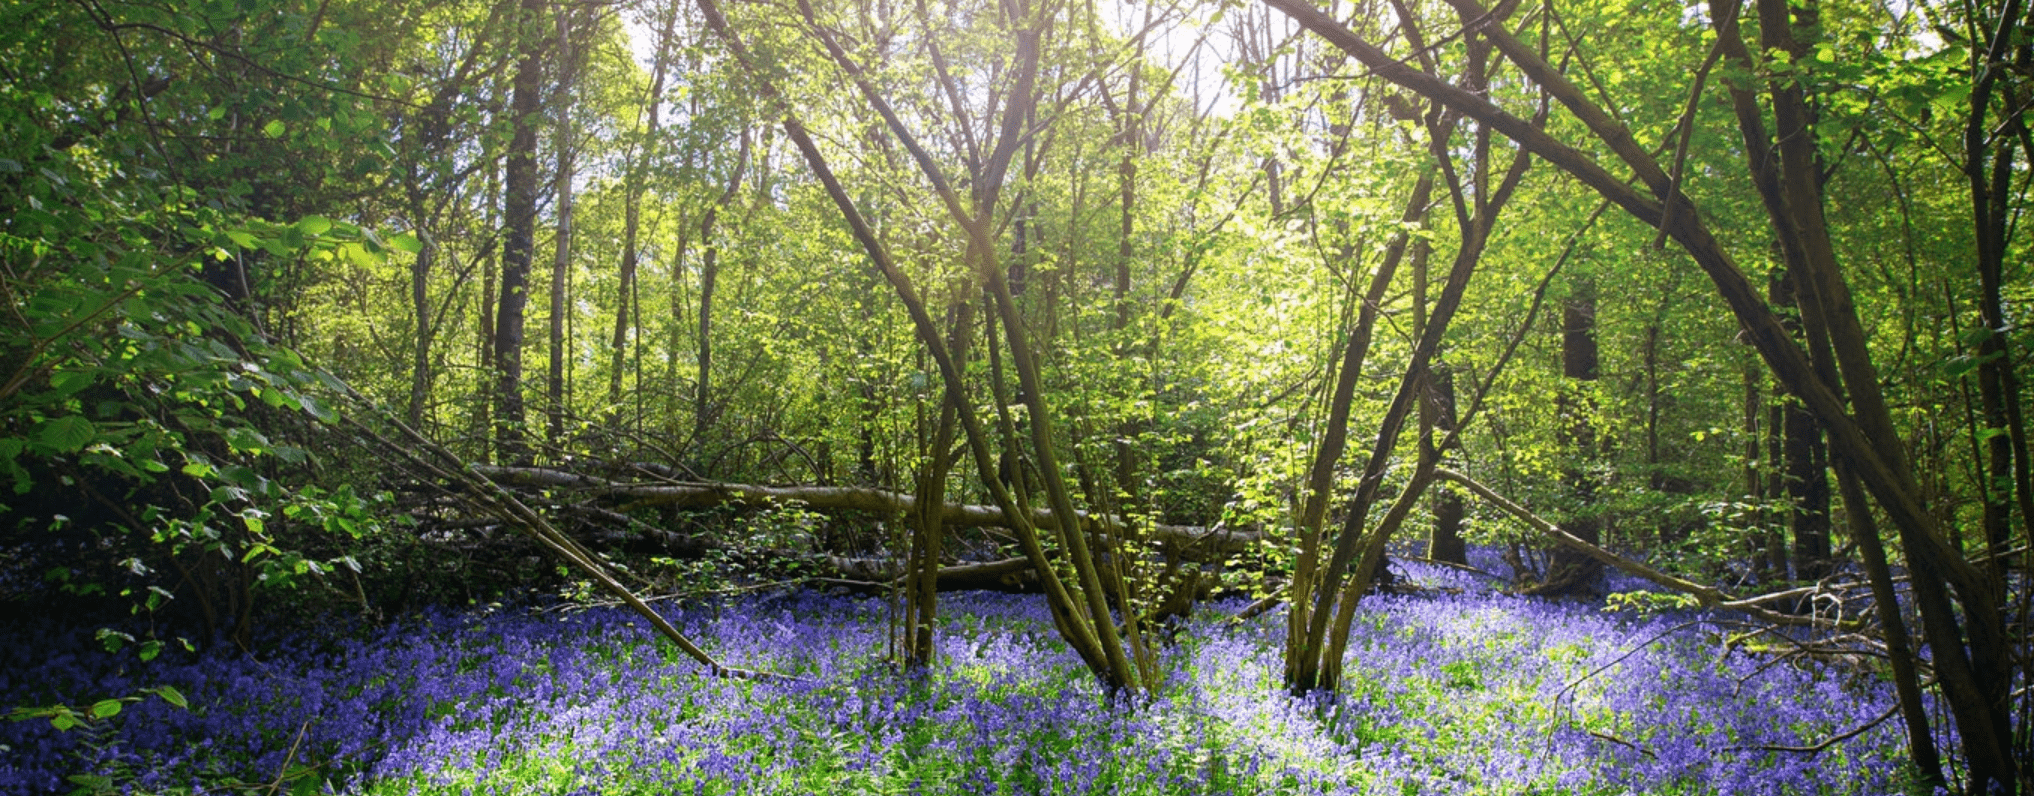 Forest Bathing - immerse yourself in nature